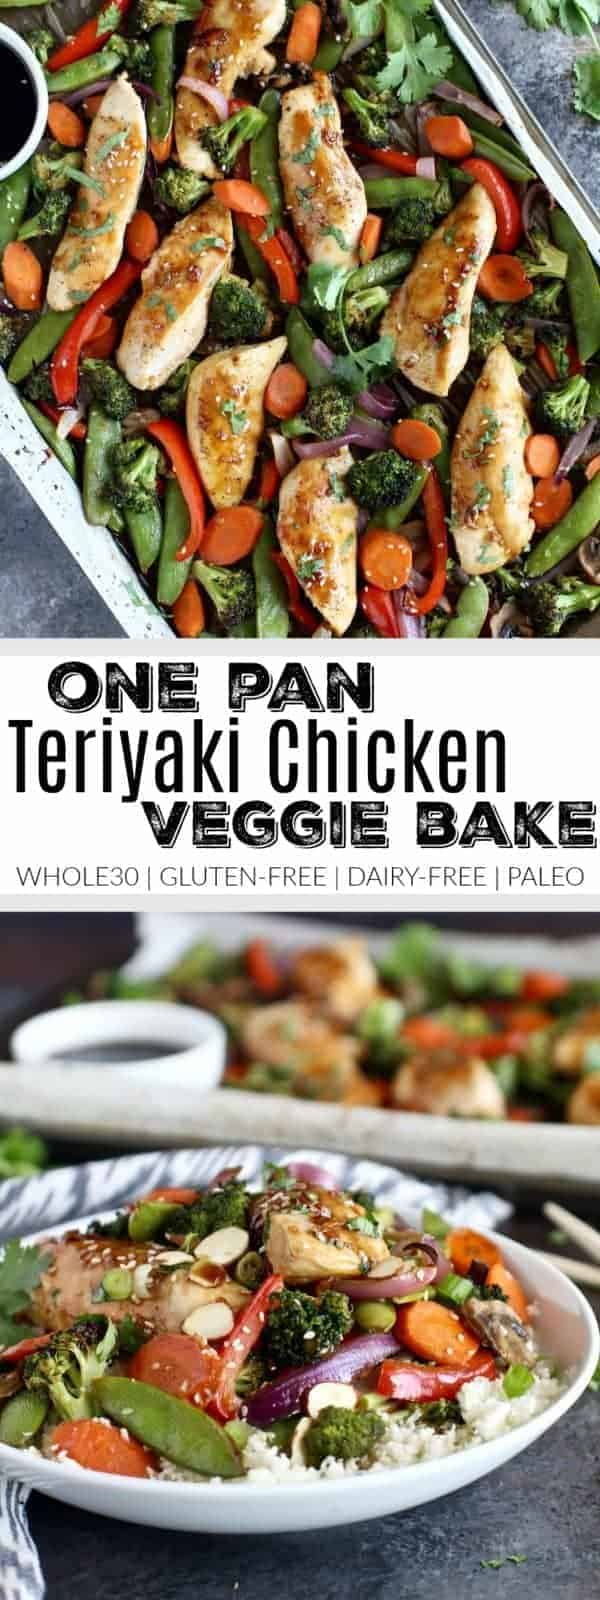 Full of flavor, nutrient-dense veggies and satisfying protein. This One-Pan Teriyaki Chicken Veggie Bake that's made with a simple homemade teriyaki sauce is Whole30-friendly and perfect for weeknight dinners.Whole30 | Gluten-free | Dairy-free | Paleo | https://therealfooddietitians.com/one-pan-teriyaki-chicken-veggie-bake/